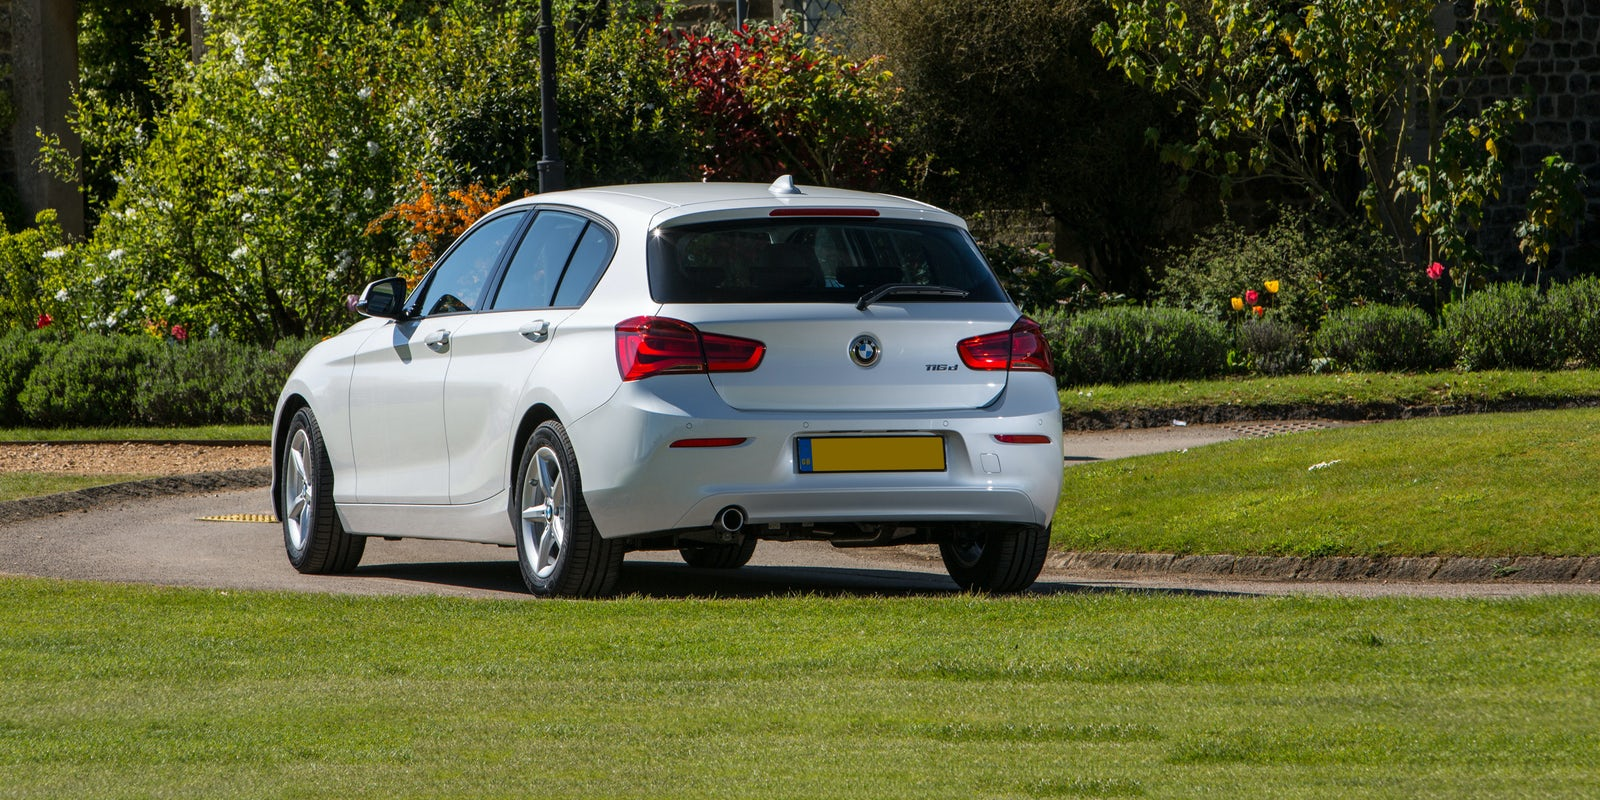 Coupe Series bmw 1 series tech specs BMW 1 Series Specifications | carwow